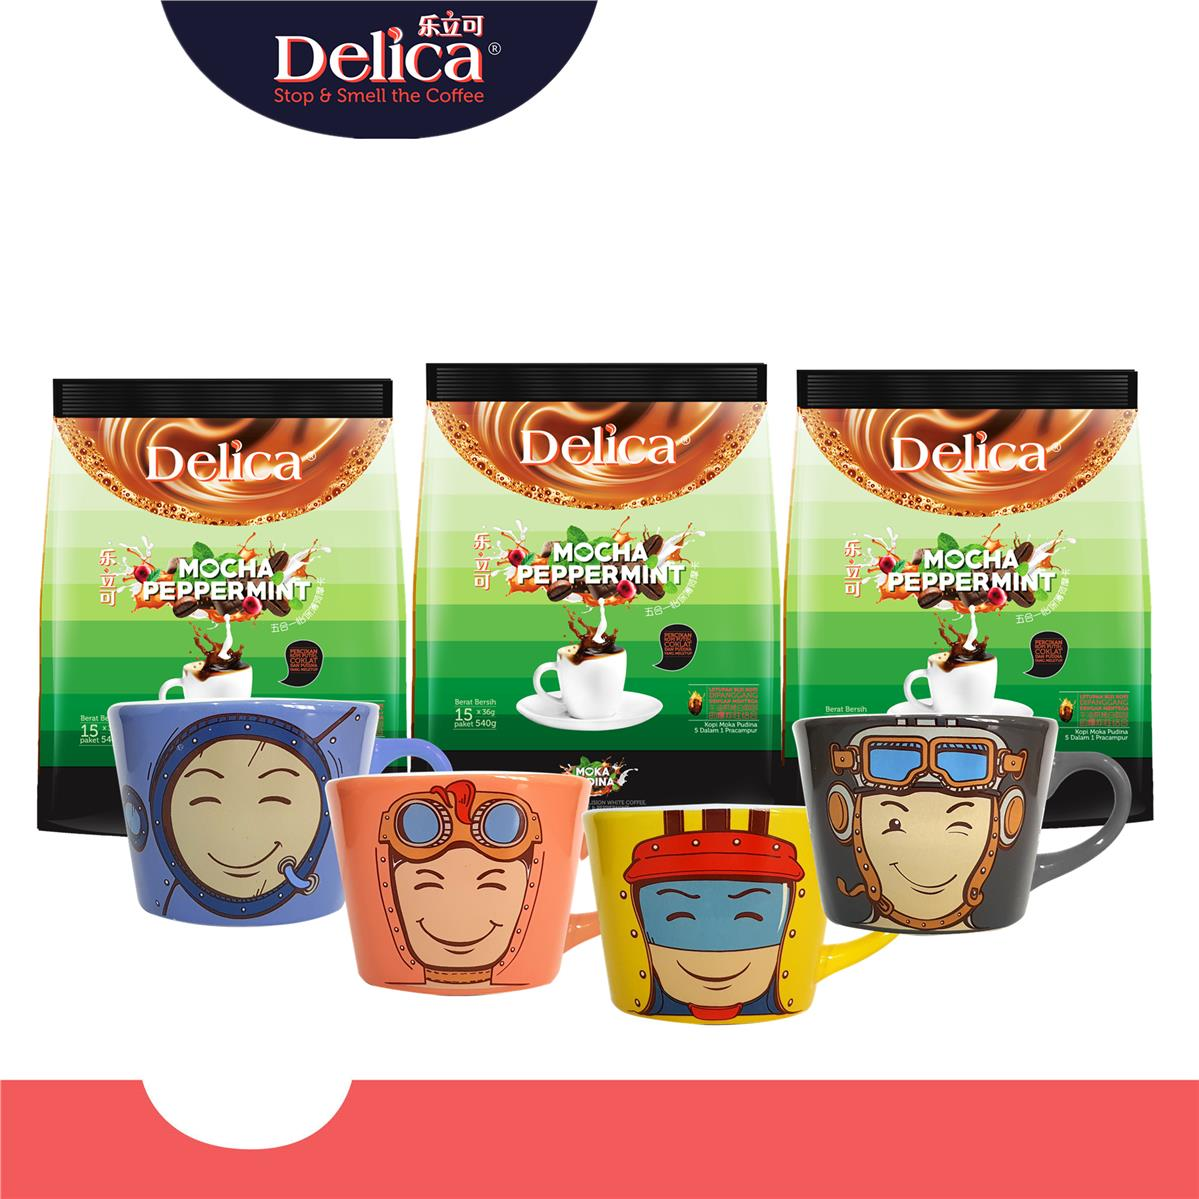 [Star Deal] [Delica Coffee] Mocha Peppermint (15 x 36g) x 3 packs